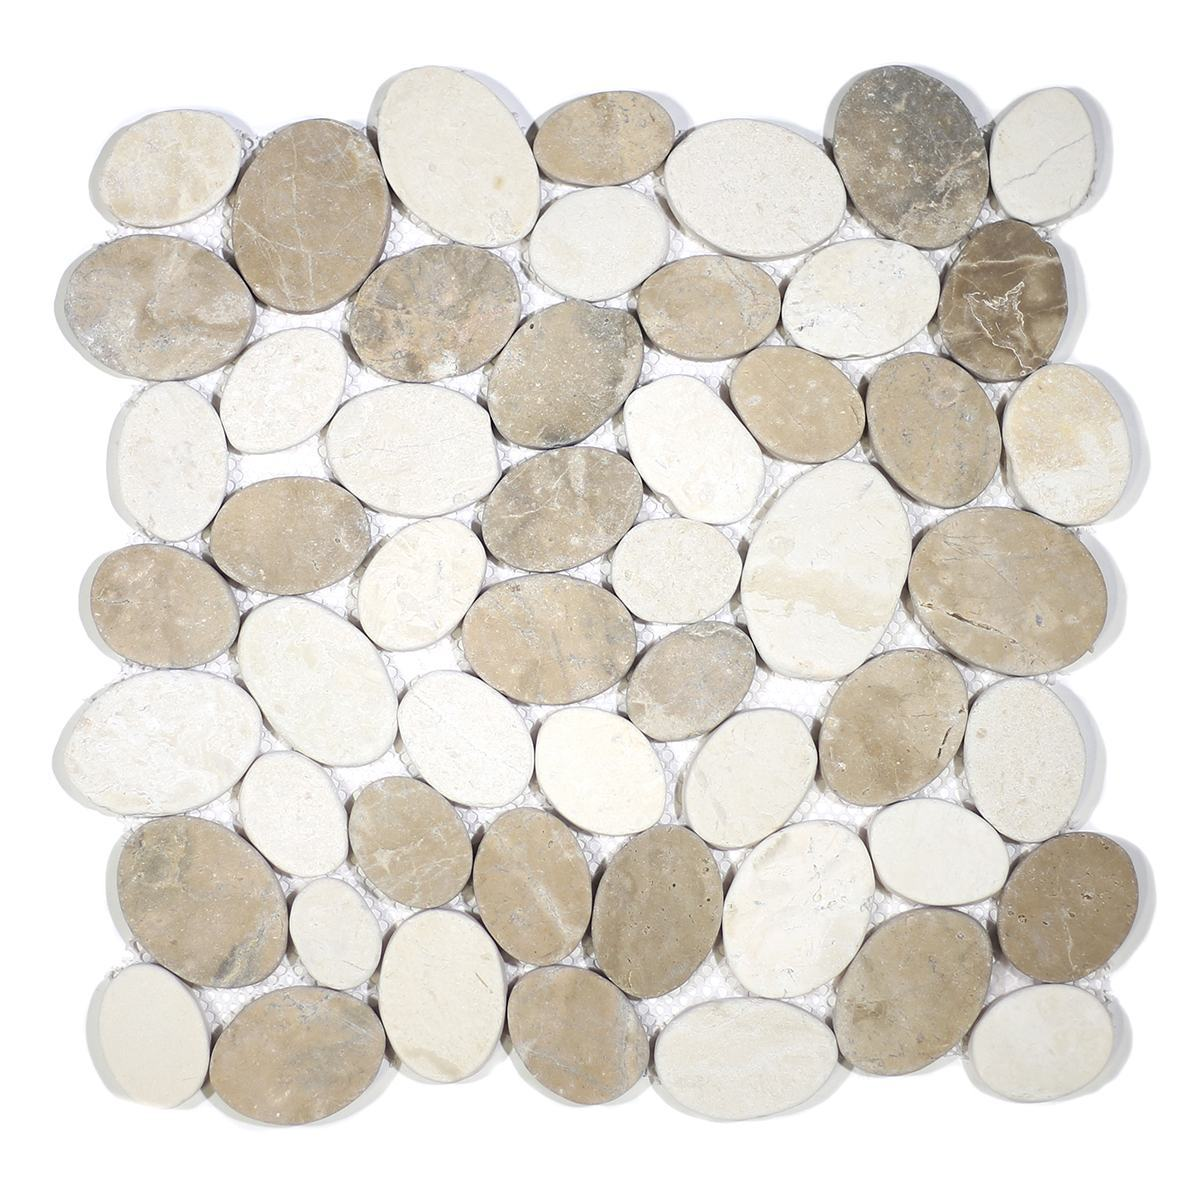 COIN MARBLE TAN & OFF-WHITE TUMBLED STONE PEBBLES